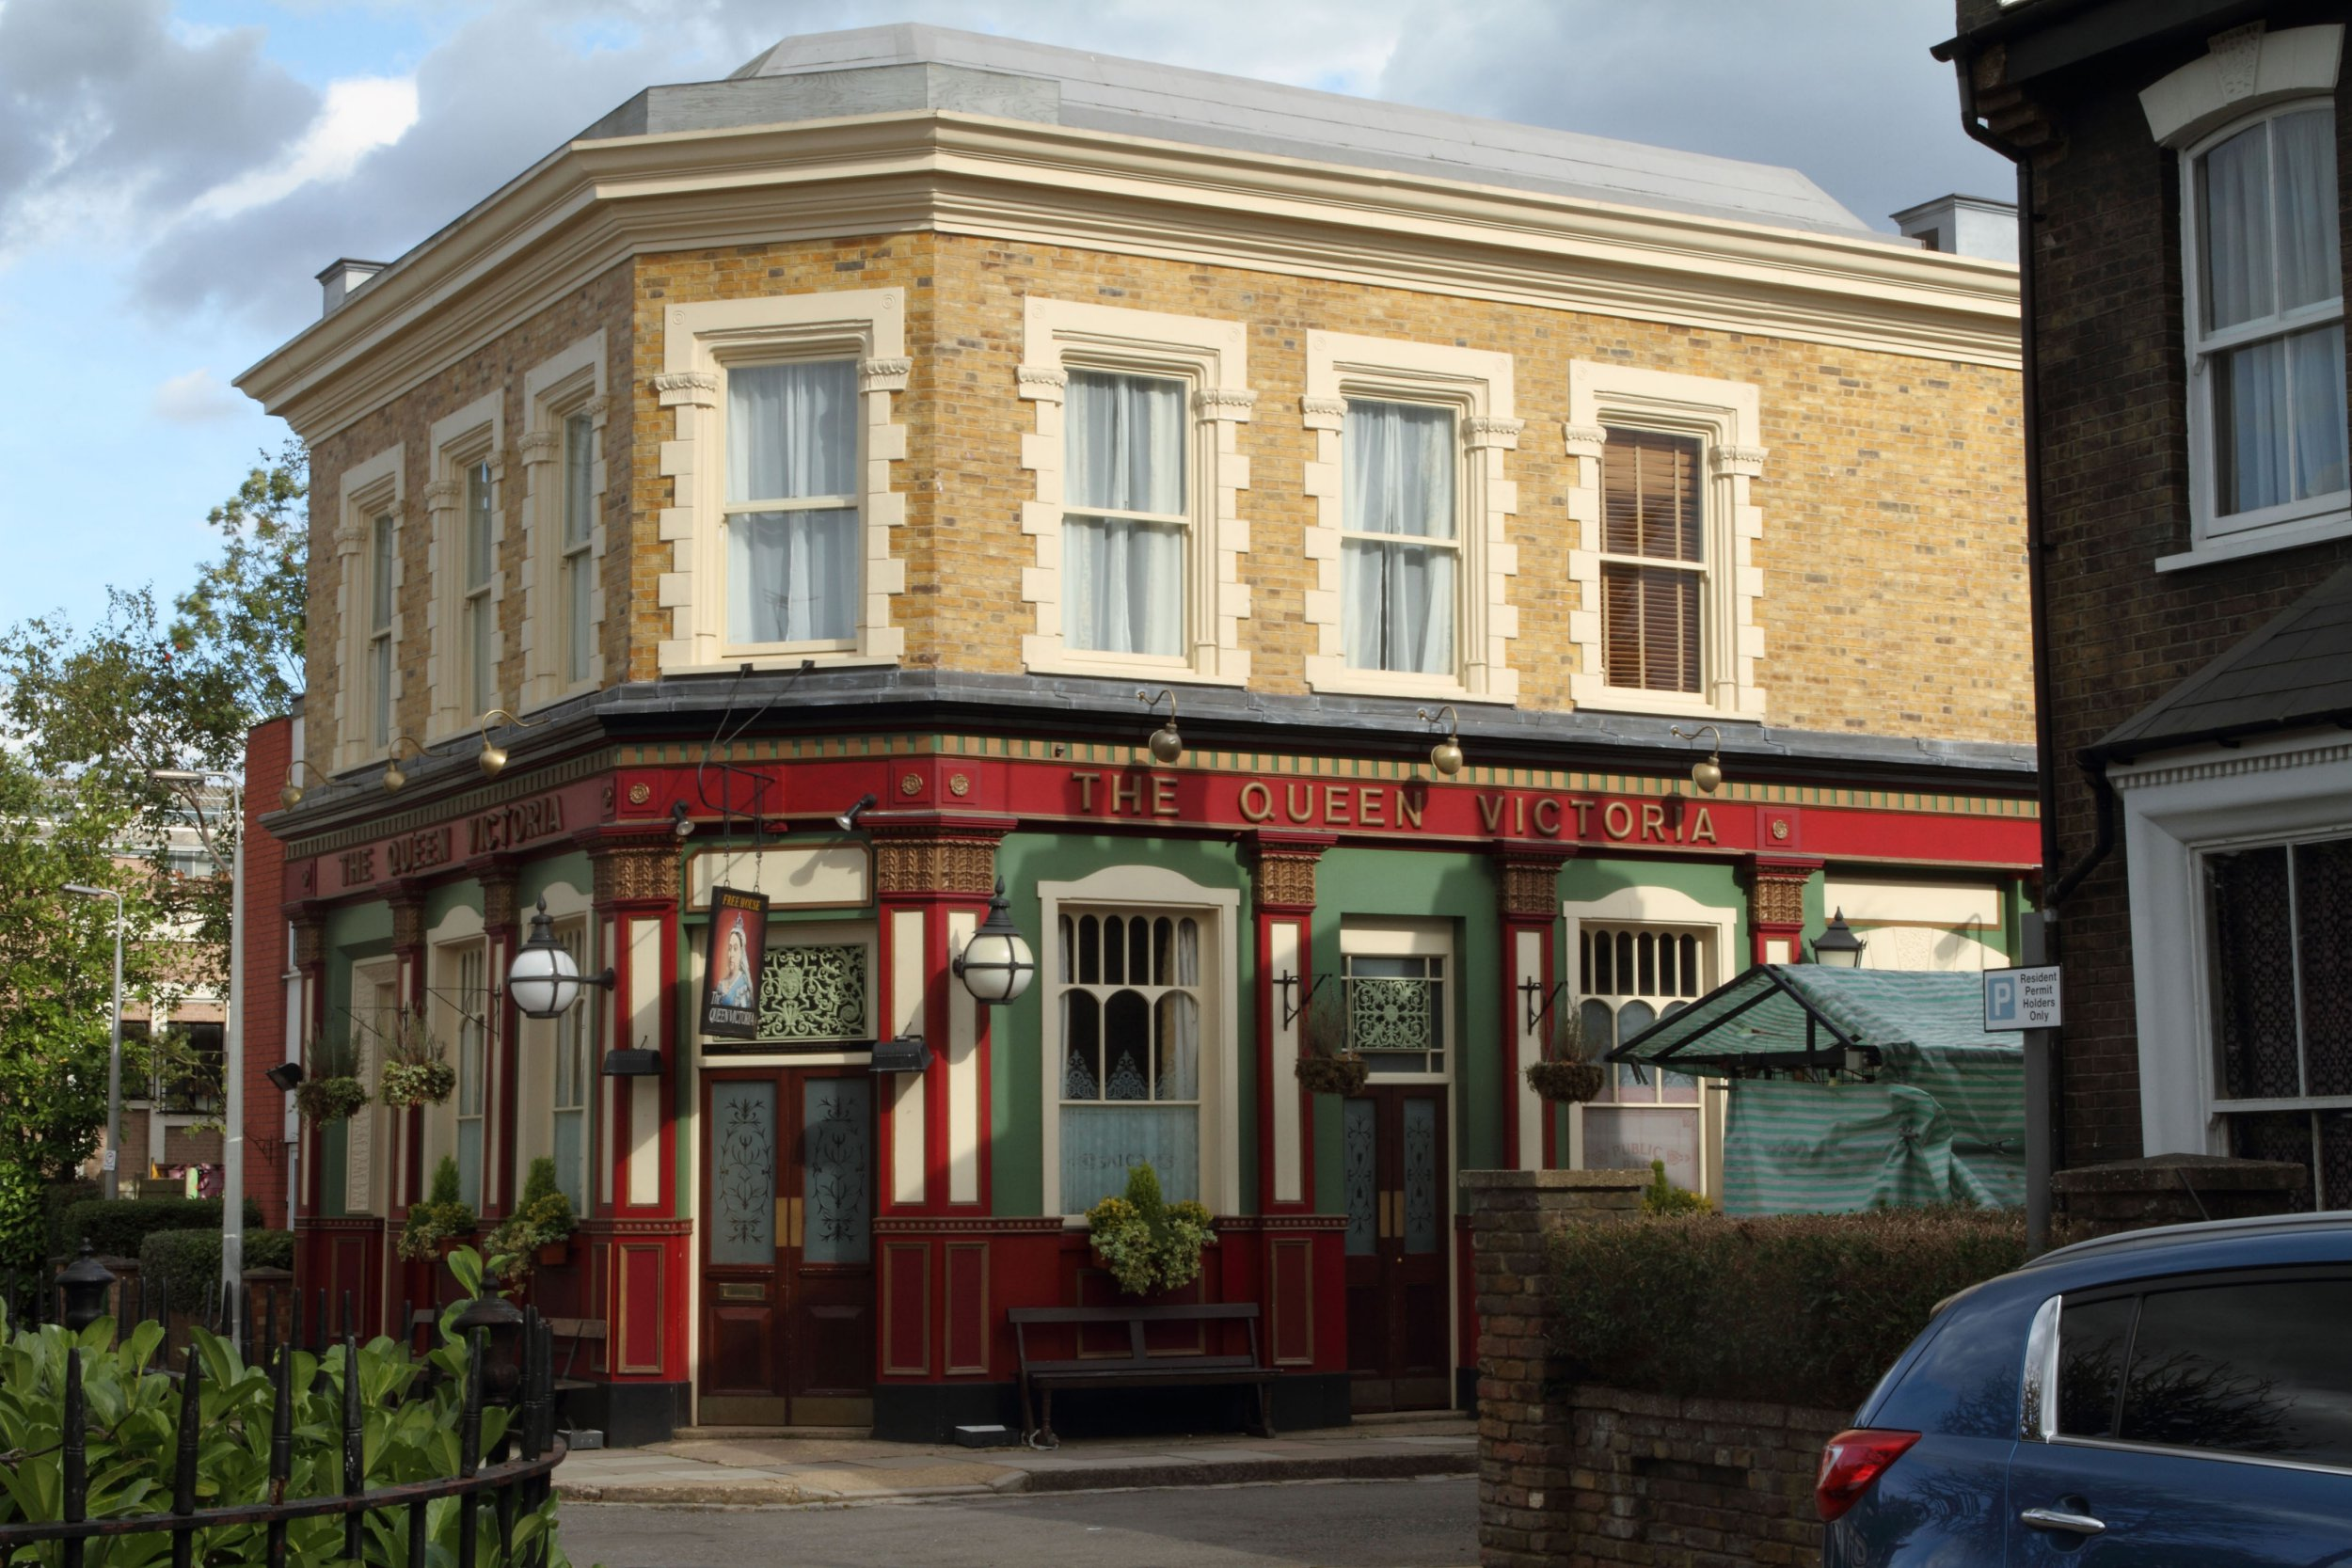 A general view of the Queen Victoria Pub 'The Queen Vic'. Programme Name: EastEnders - TX: n/a - Episode: Generics (No. n/a) - Picture Shows: Albert Square - (C) BBC - Photographer: Jack Barnes